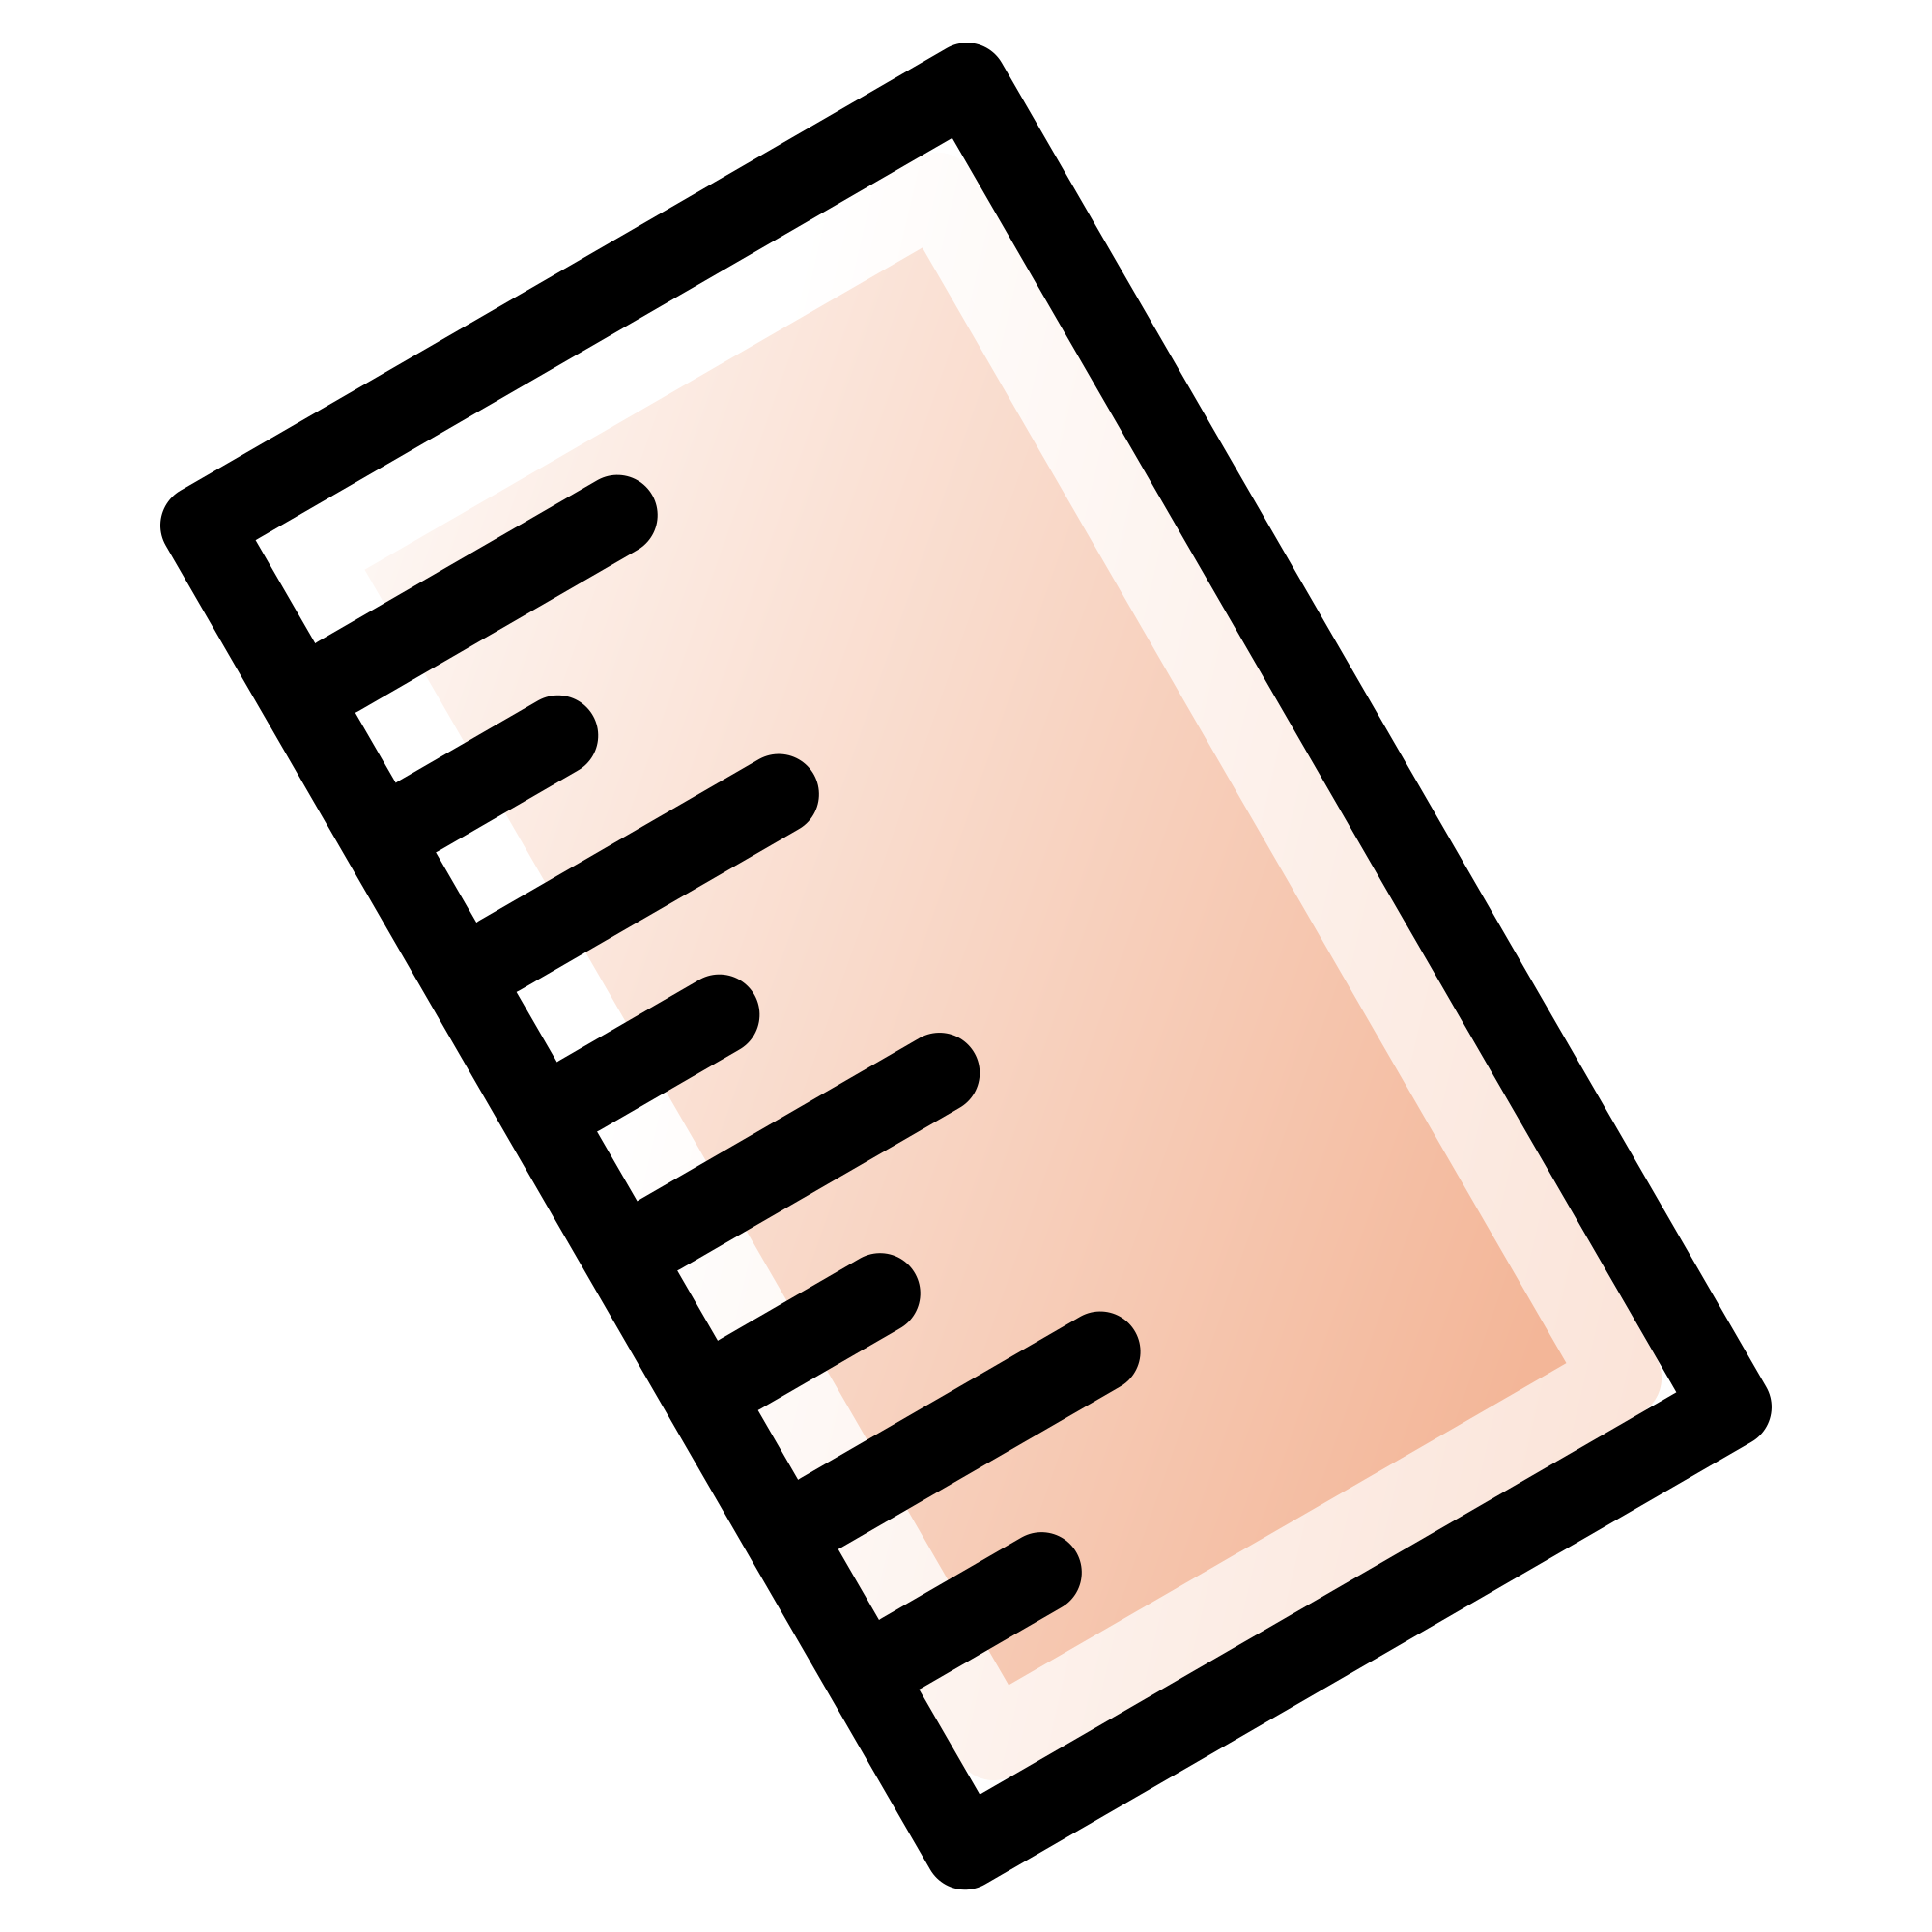 Svg inkscape tool. File icons measurement wikimedia